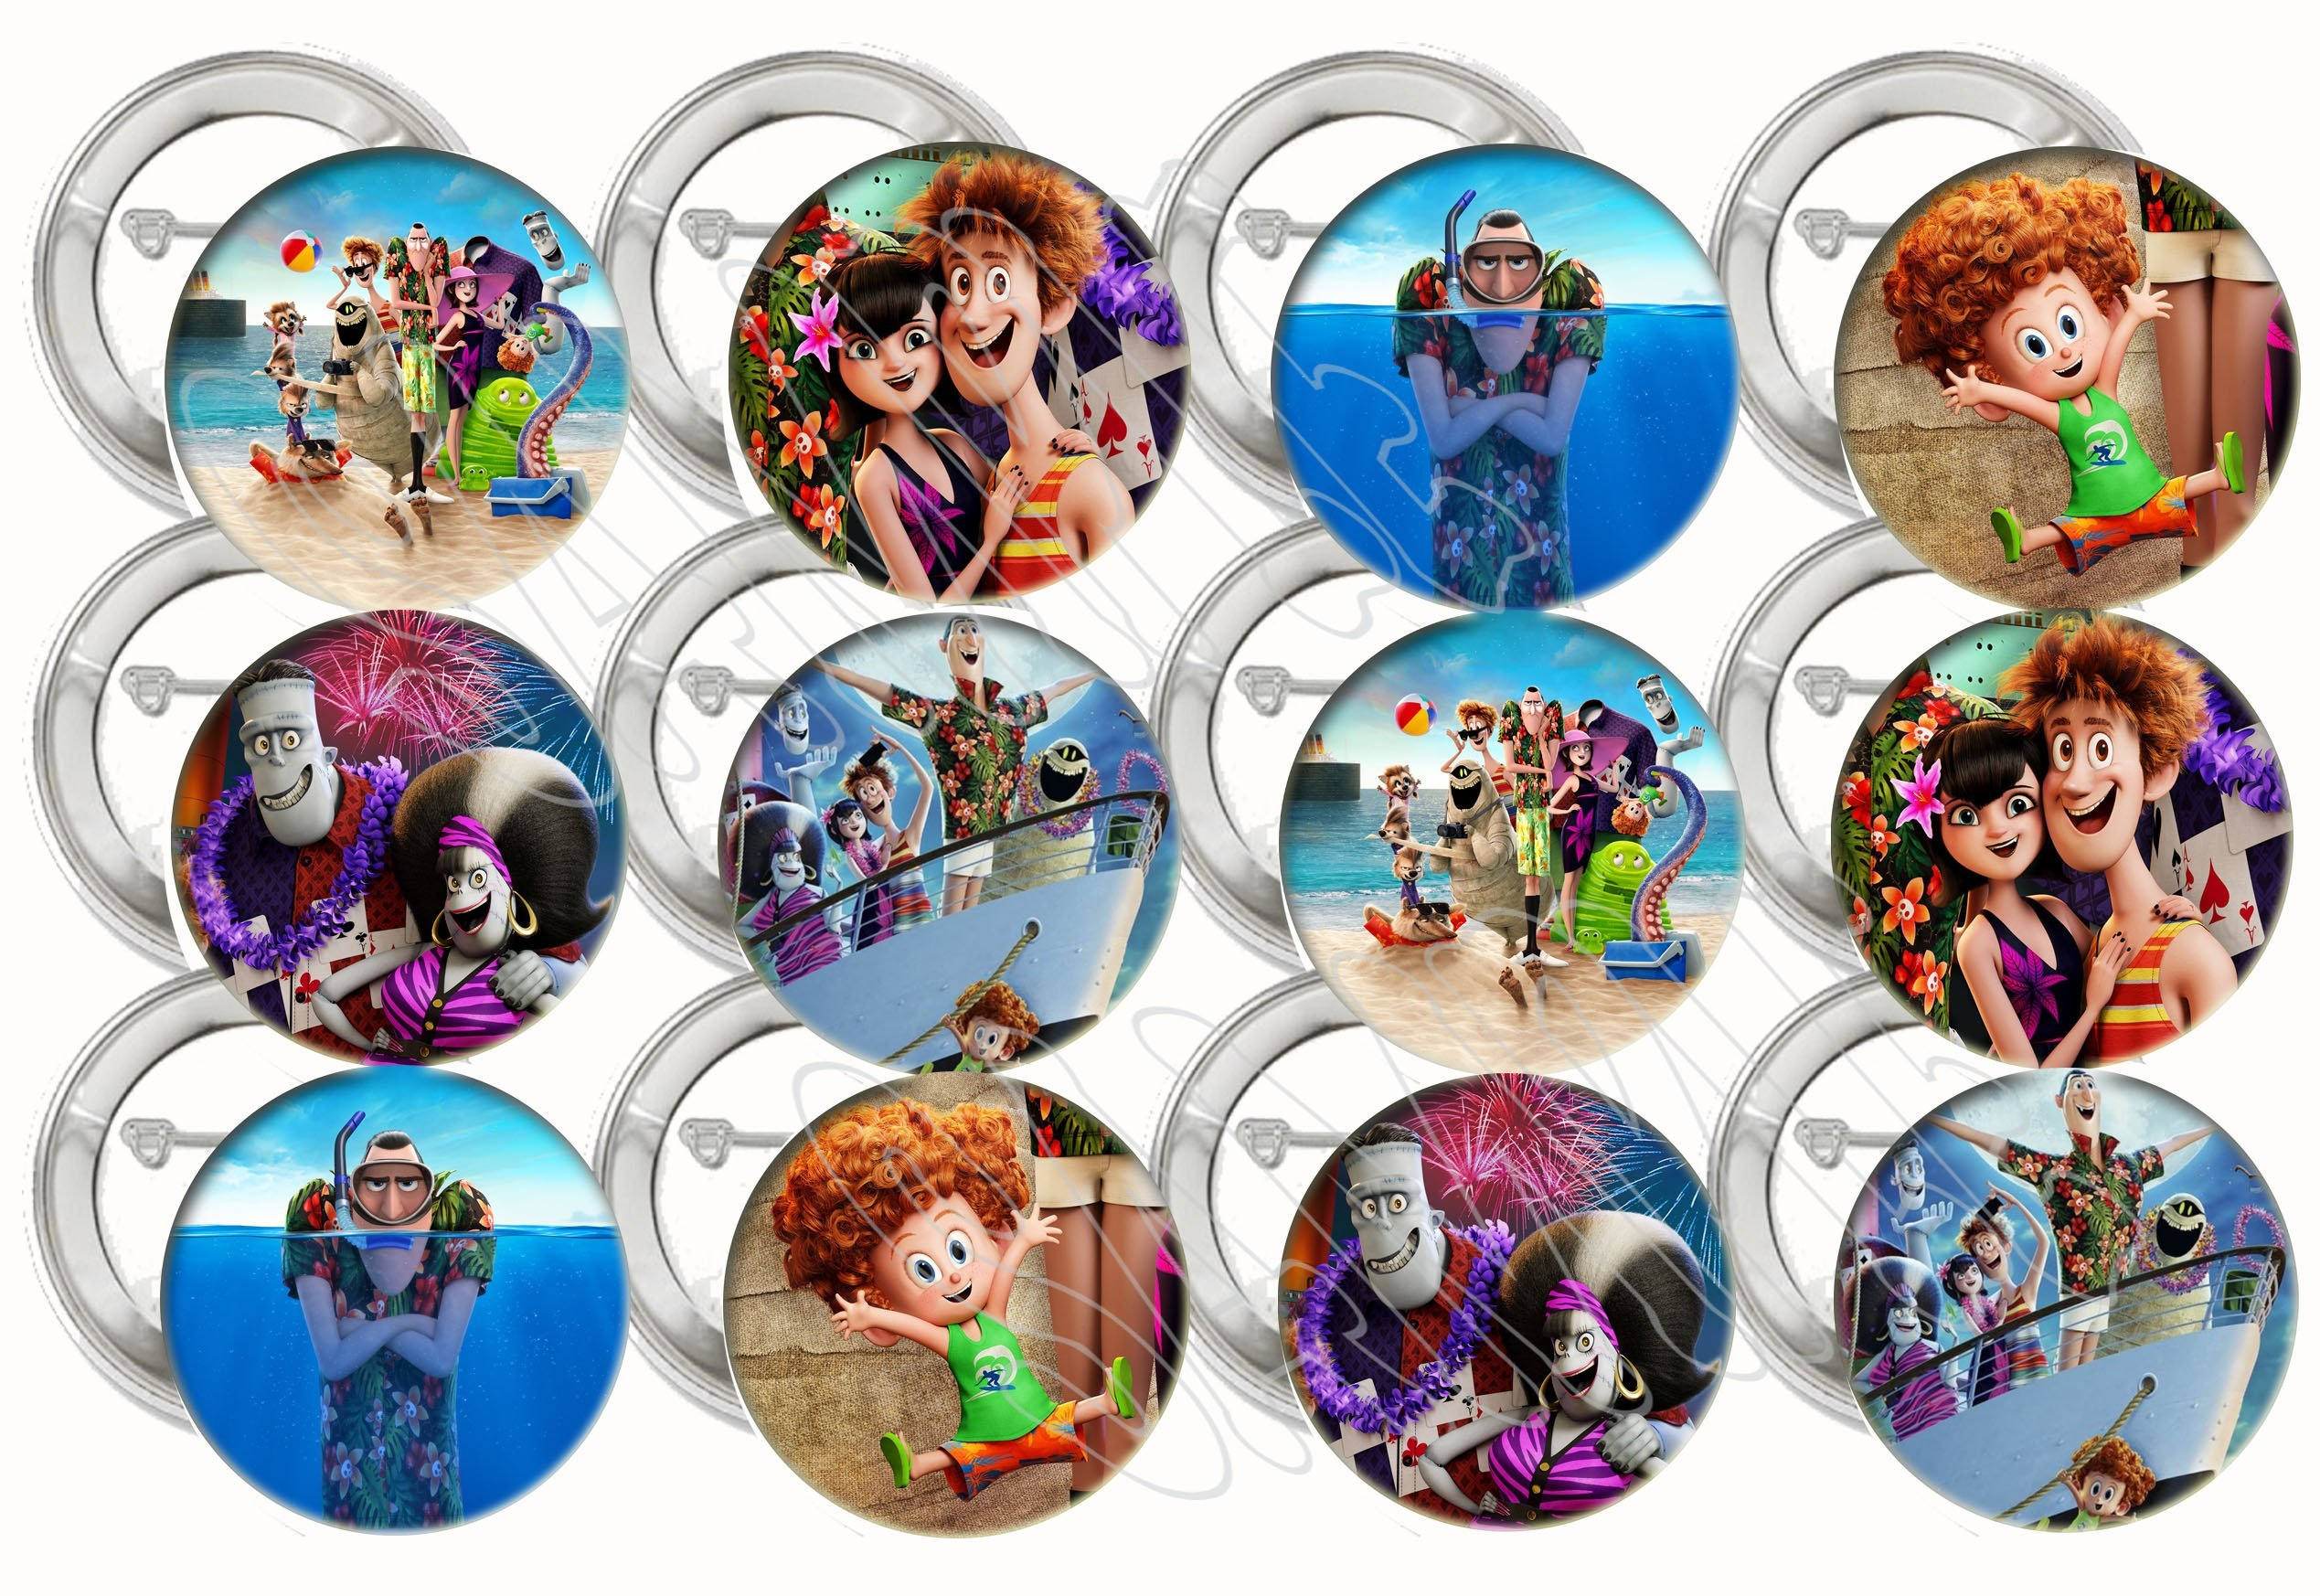 "Hotel Transylvania 3 Buttons Summer Vacation Party Favors Supplies Decorations Collectible Metal Pinback Buttons Pins, Large 2.25"" -12 pcs, Mavis, Johnny, Dracula Movie"